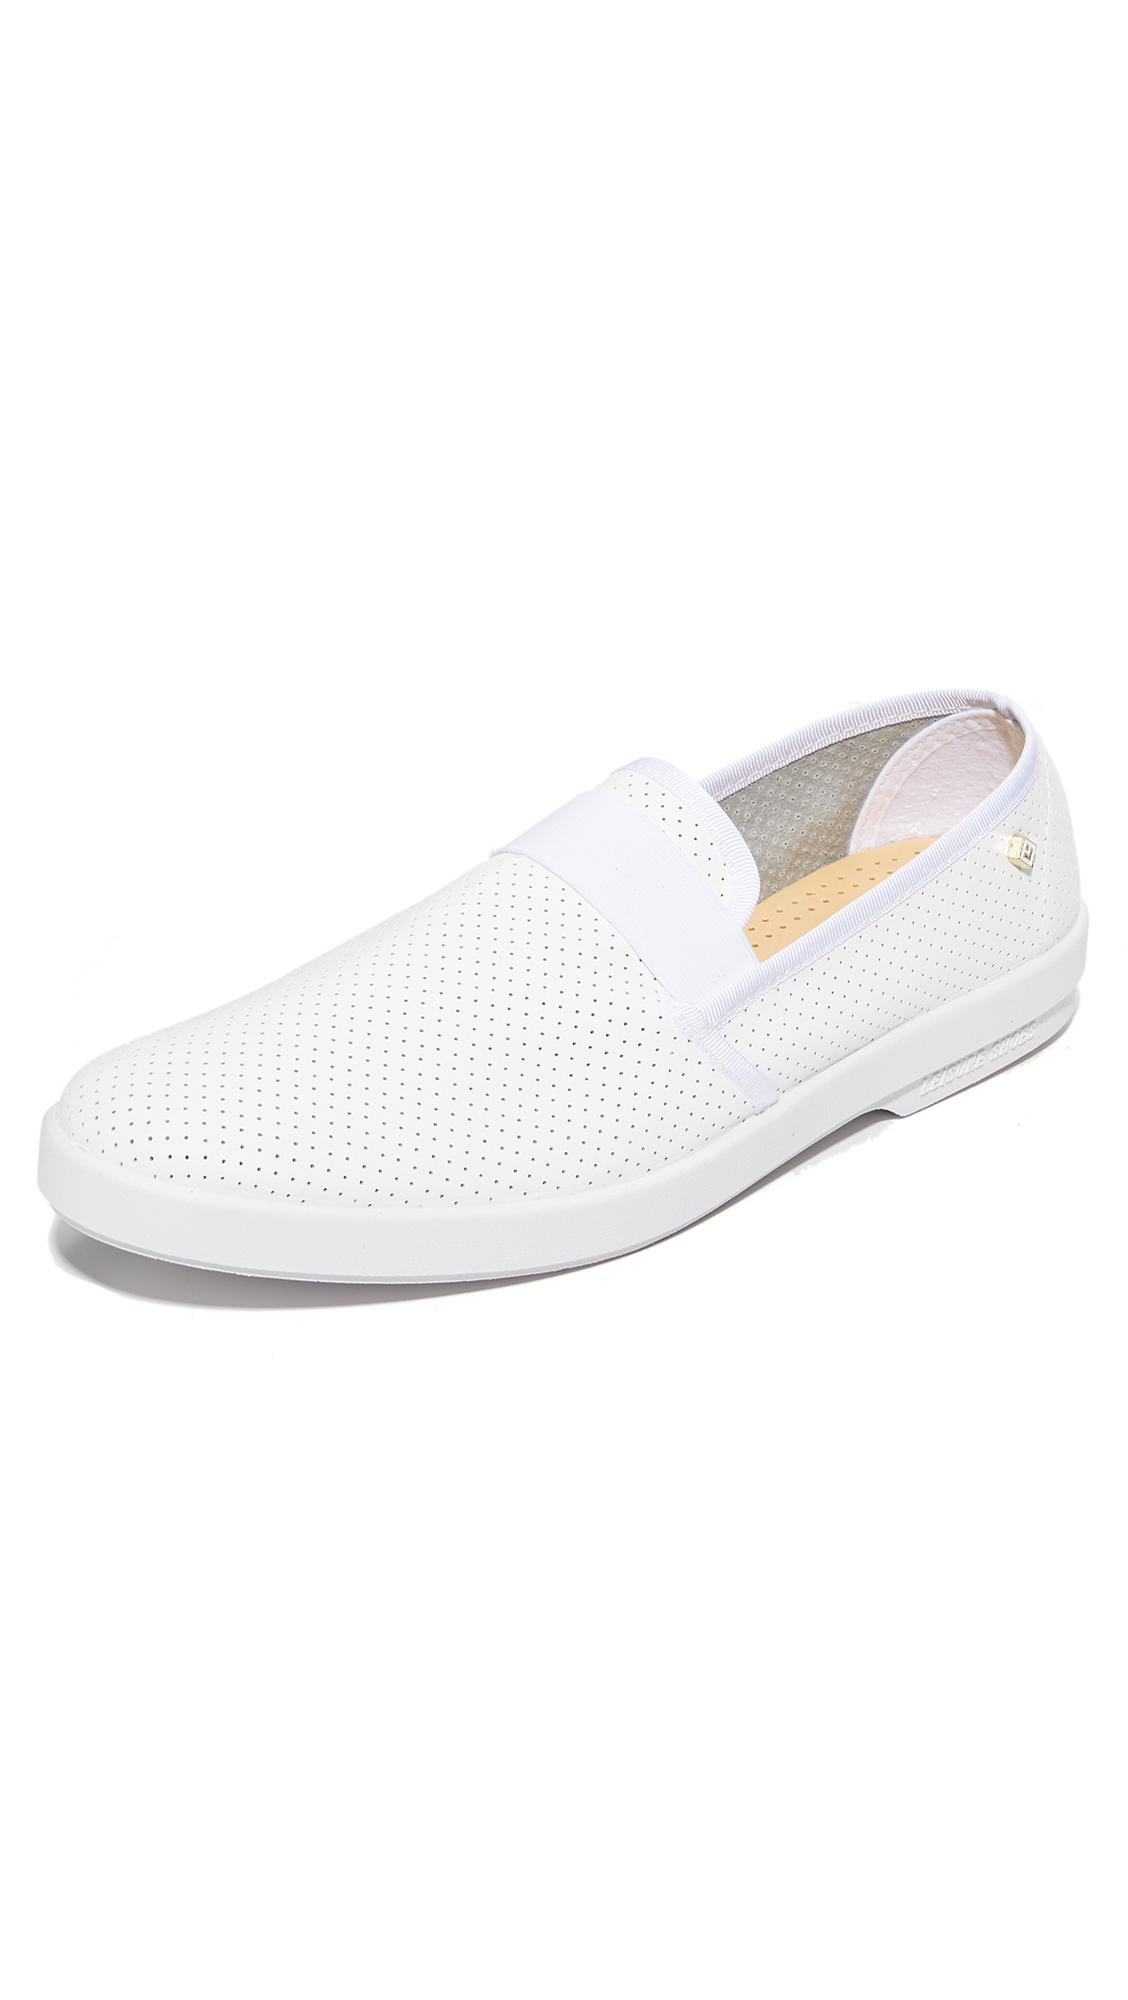 rivieras basket 30 perforated leather slip ons in white for men lyst. Black Bedroom Furniture Sets. Home Design Ideas